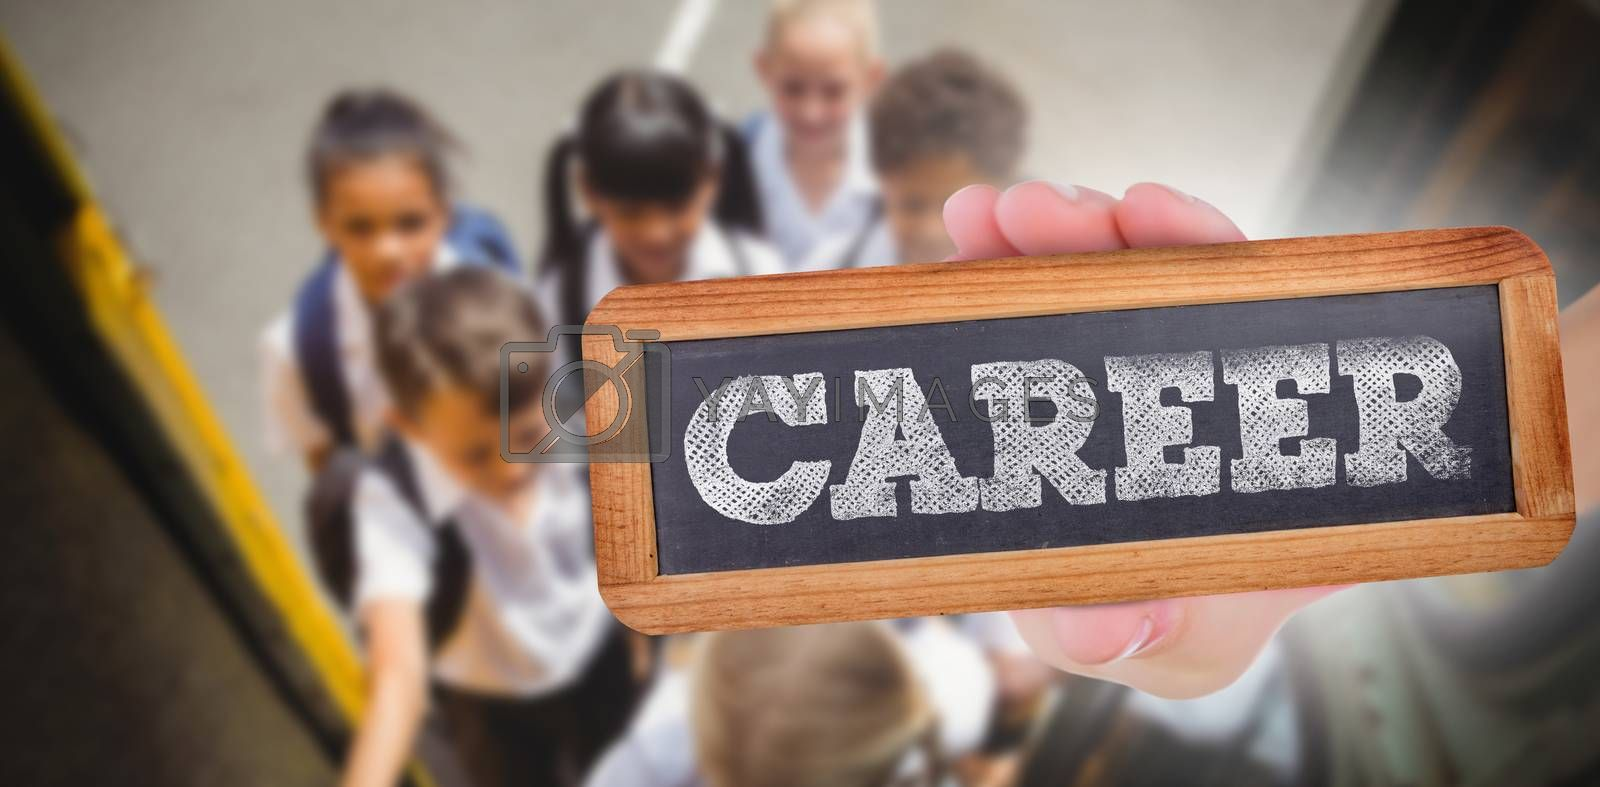 The word career and hand showing chalkboard against cute schoolchildren getting on school bus